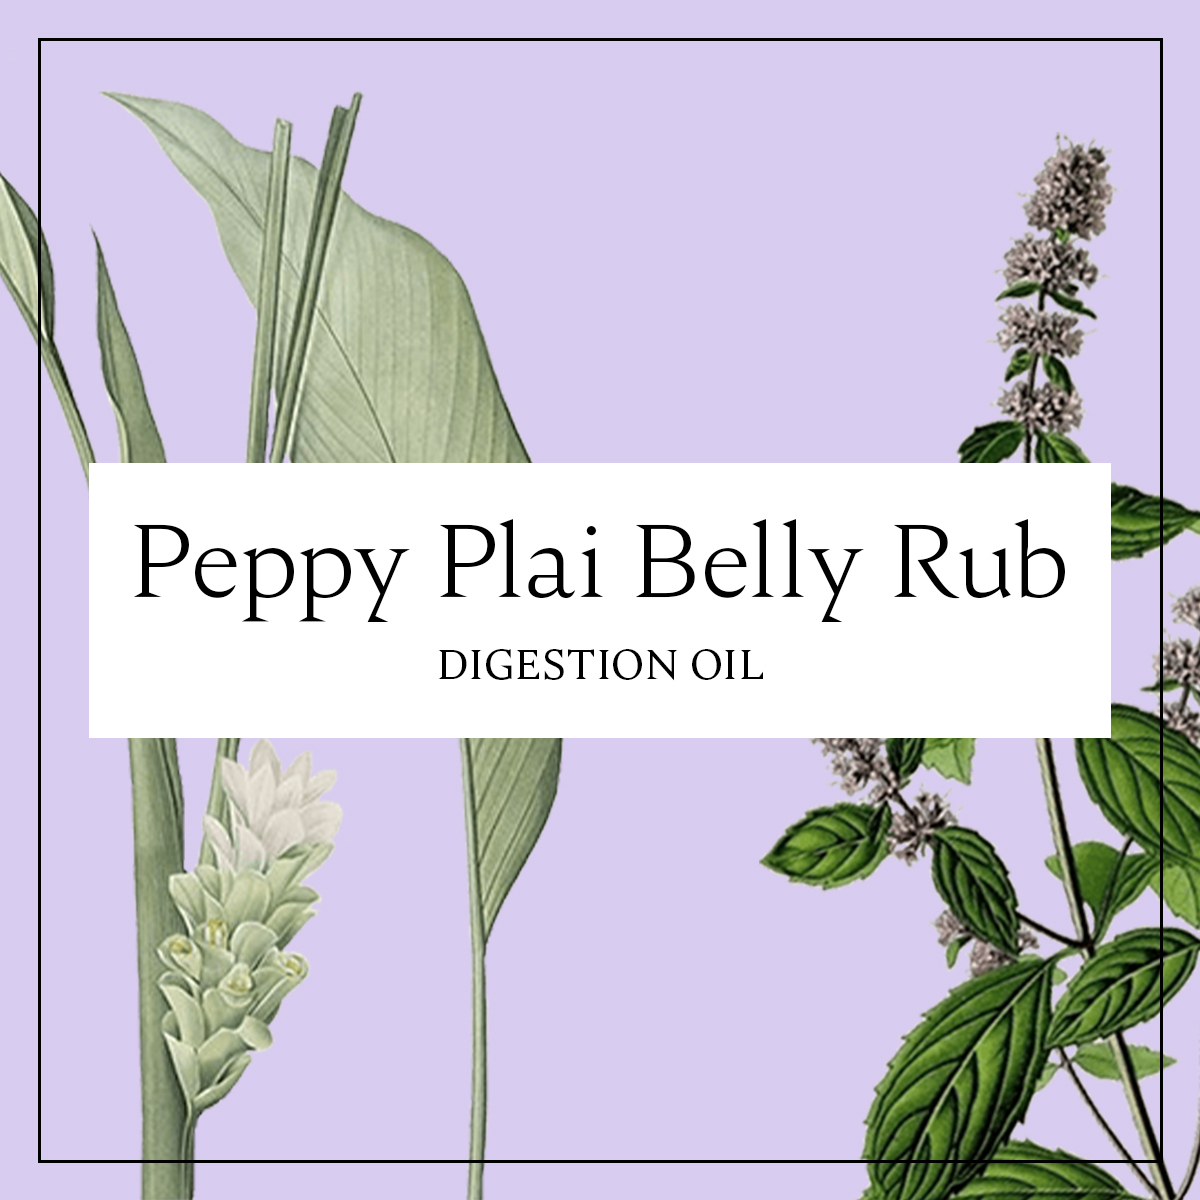 Peppy Plai Belly Rub: Essential Oils to Support Digestion